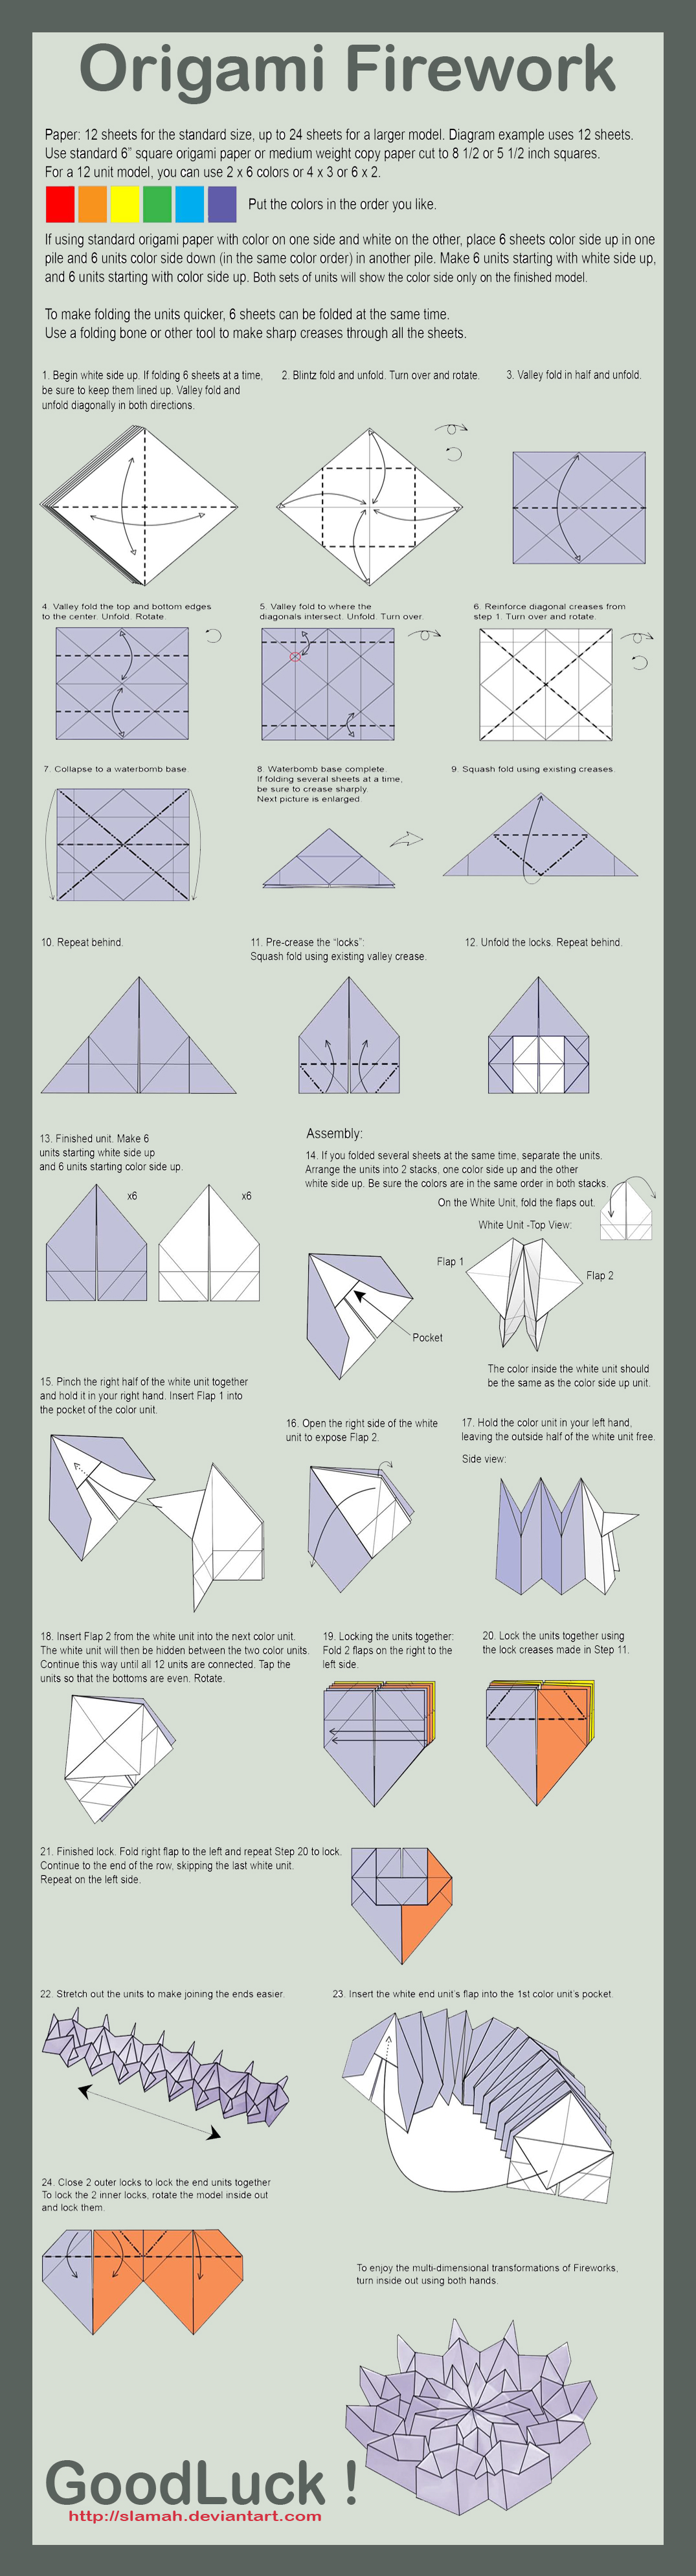 medium resolution of origami firework folding instructions origami instruction